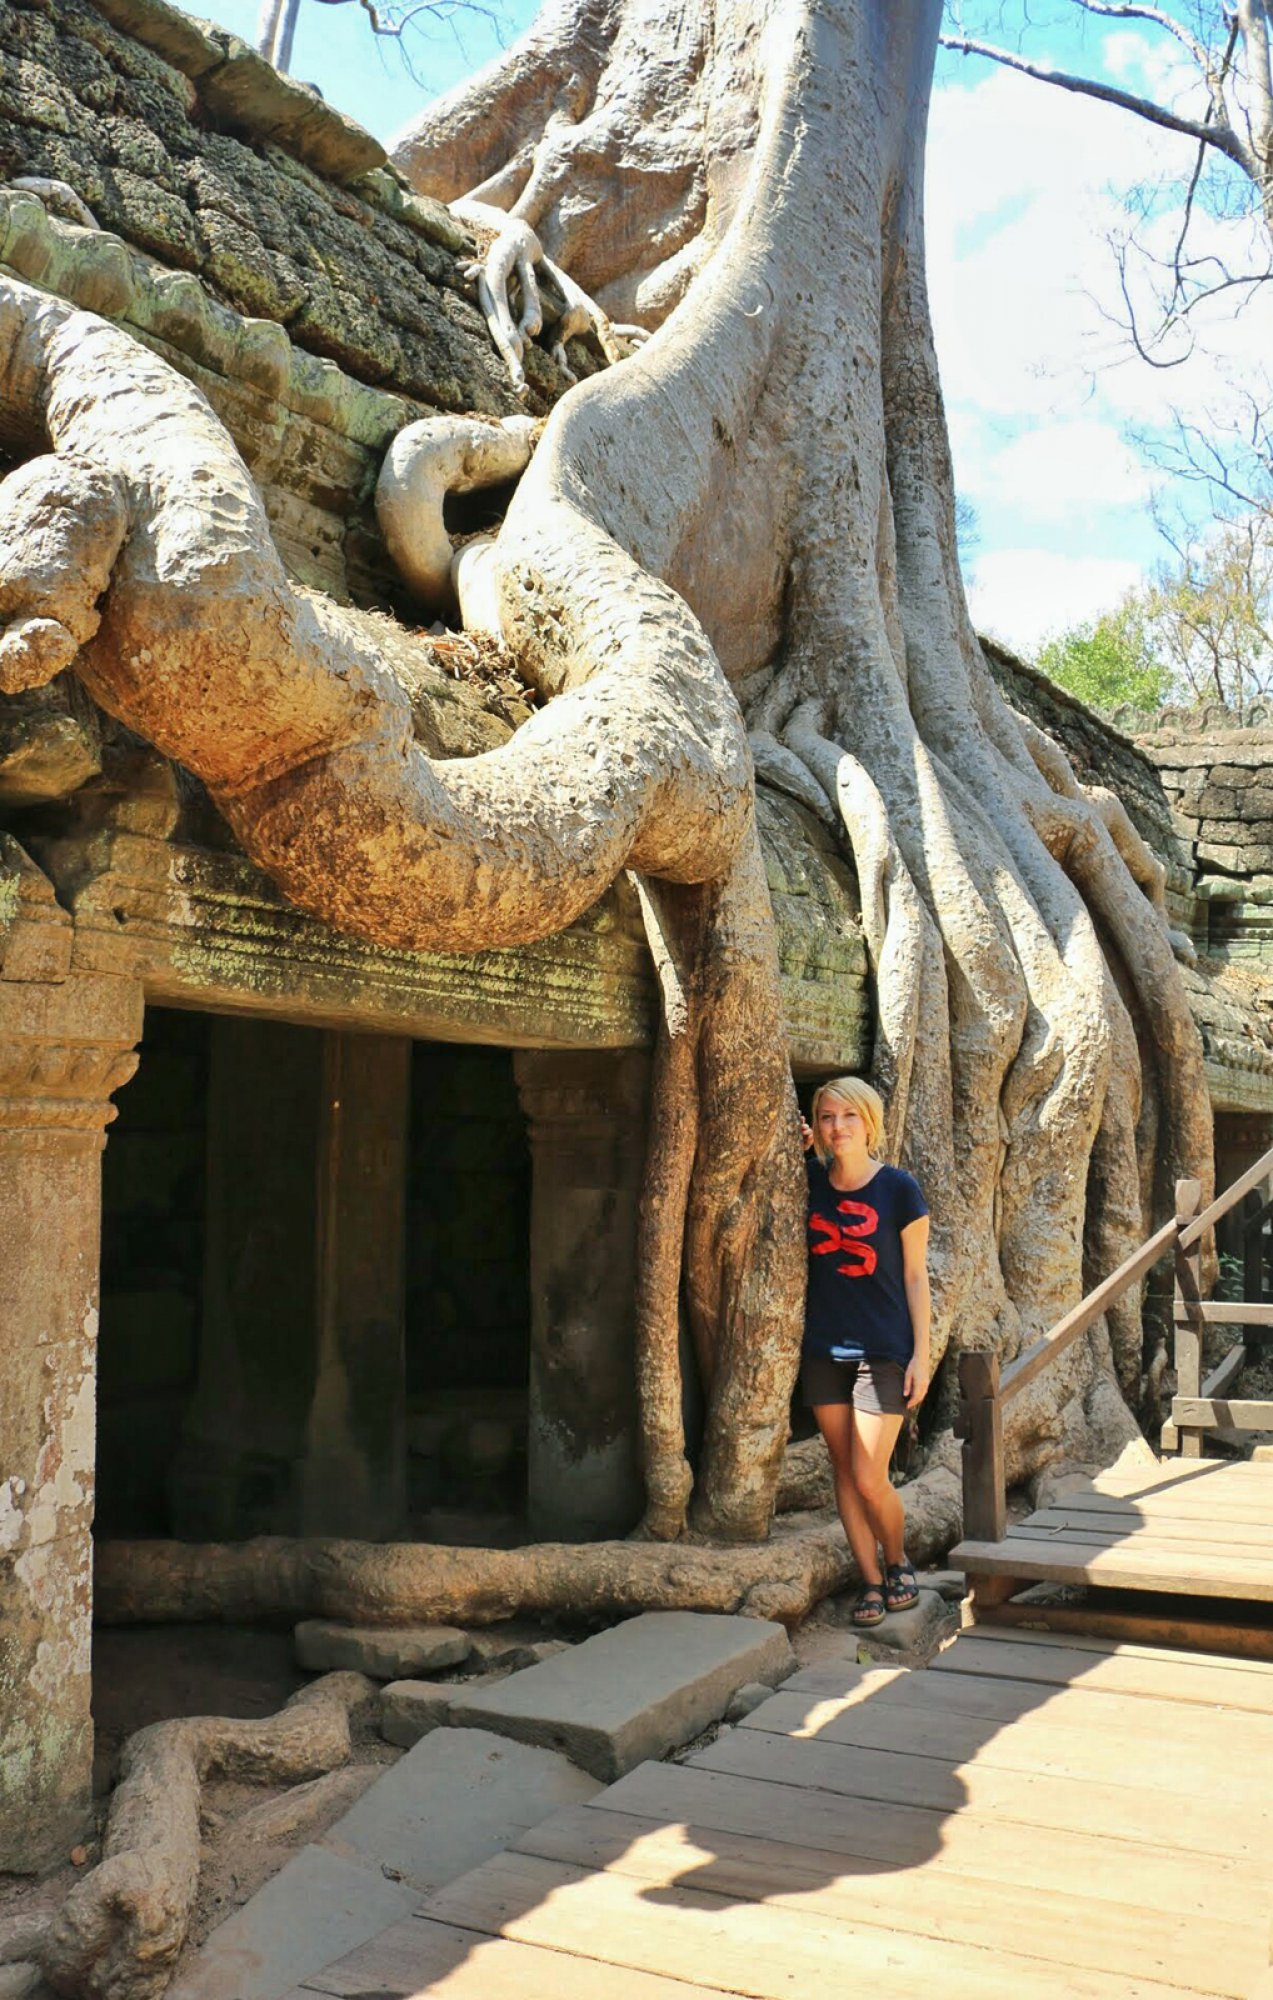 https://bubo.sk/uploads/galleries/3465/kambodza-taprohm-bubo.jpeg